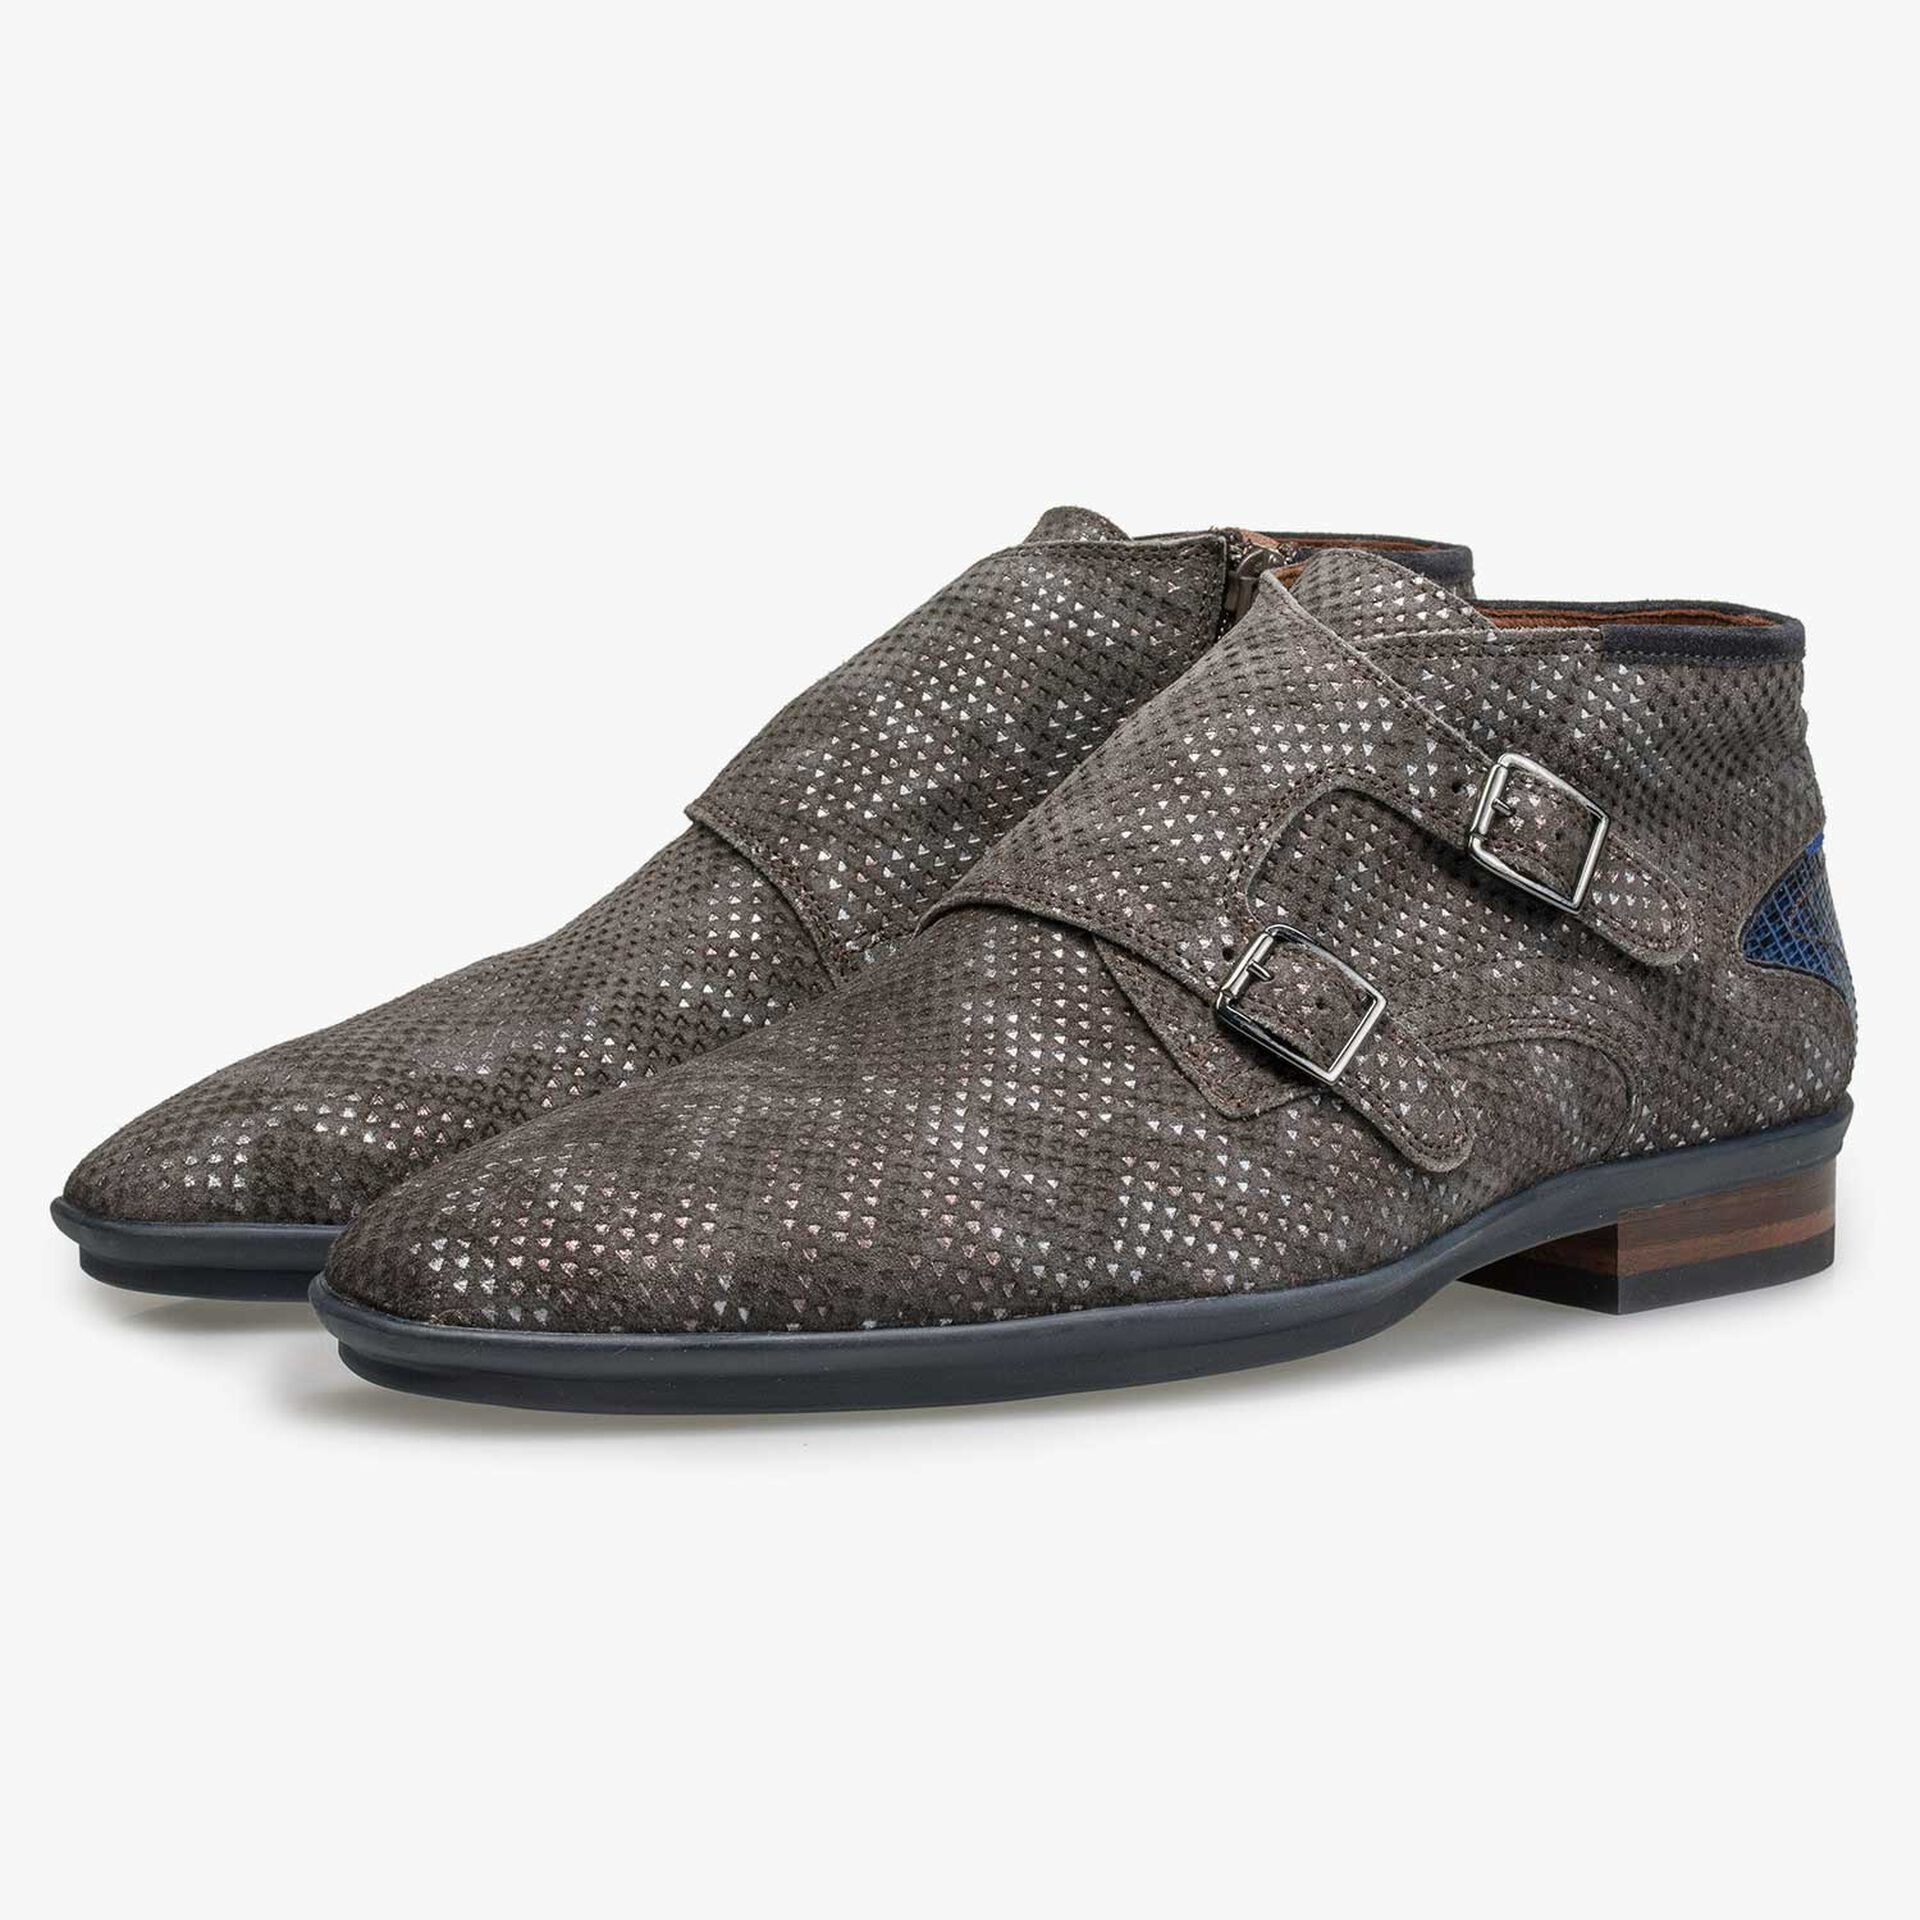 Mid-high brown patterned buckled shoe